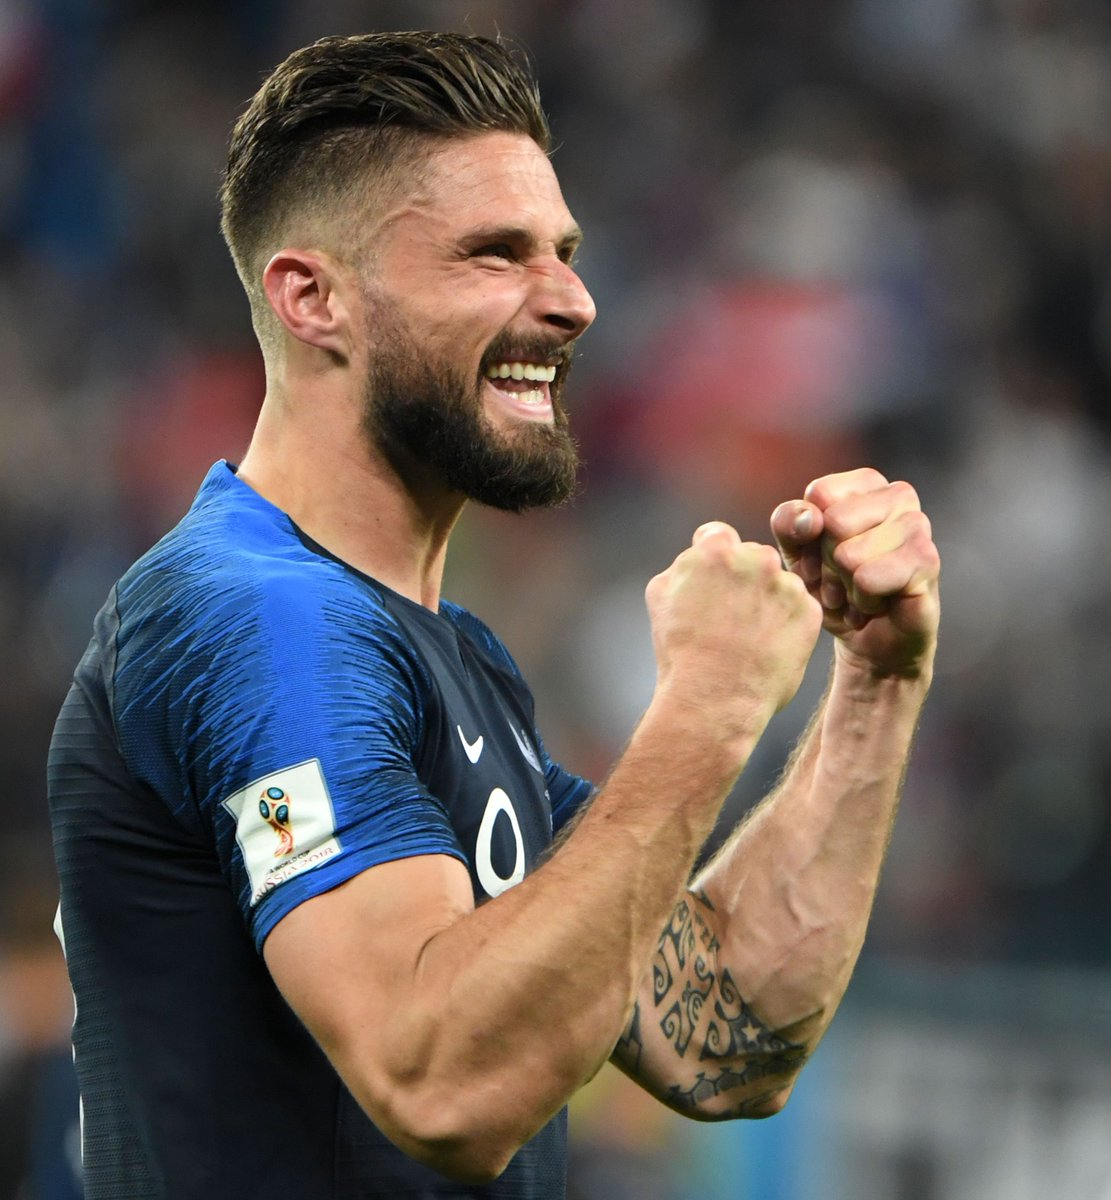 From Grenoble to Istres From Tours to Montpellier From Arsenal to a regular for #FRA  And now… a #WorldCup winner!  What a journey you've had, Olivier - we're all so pleased for you 😄